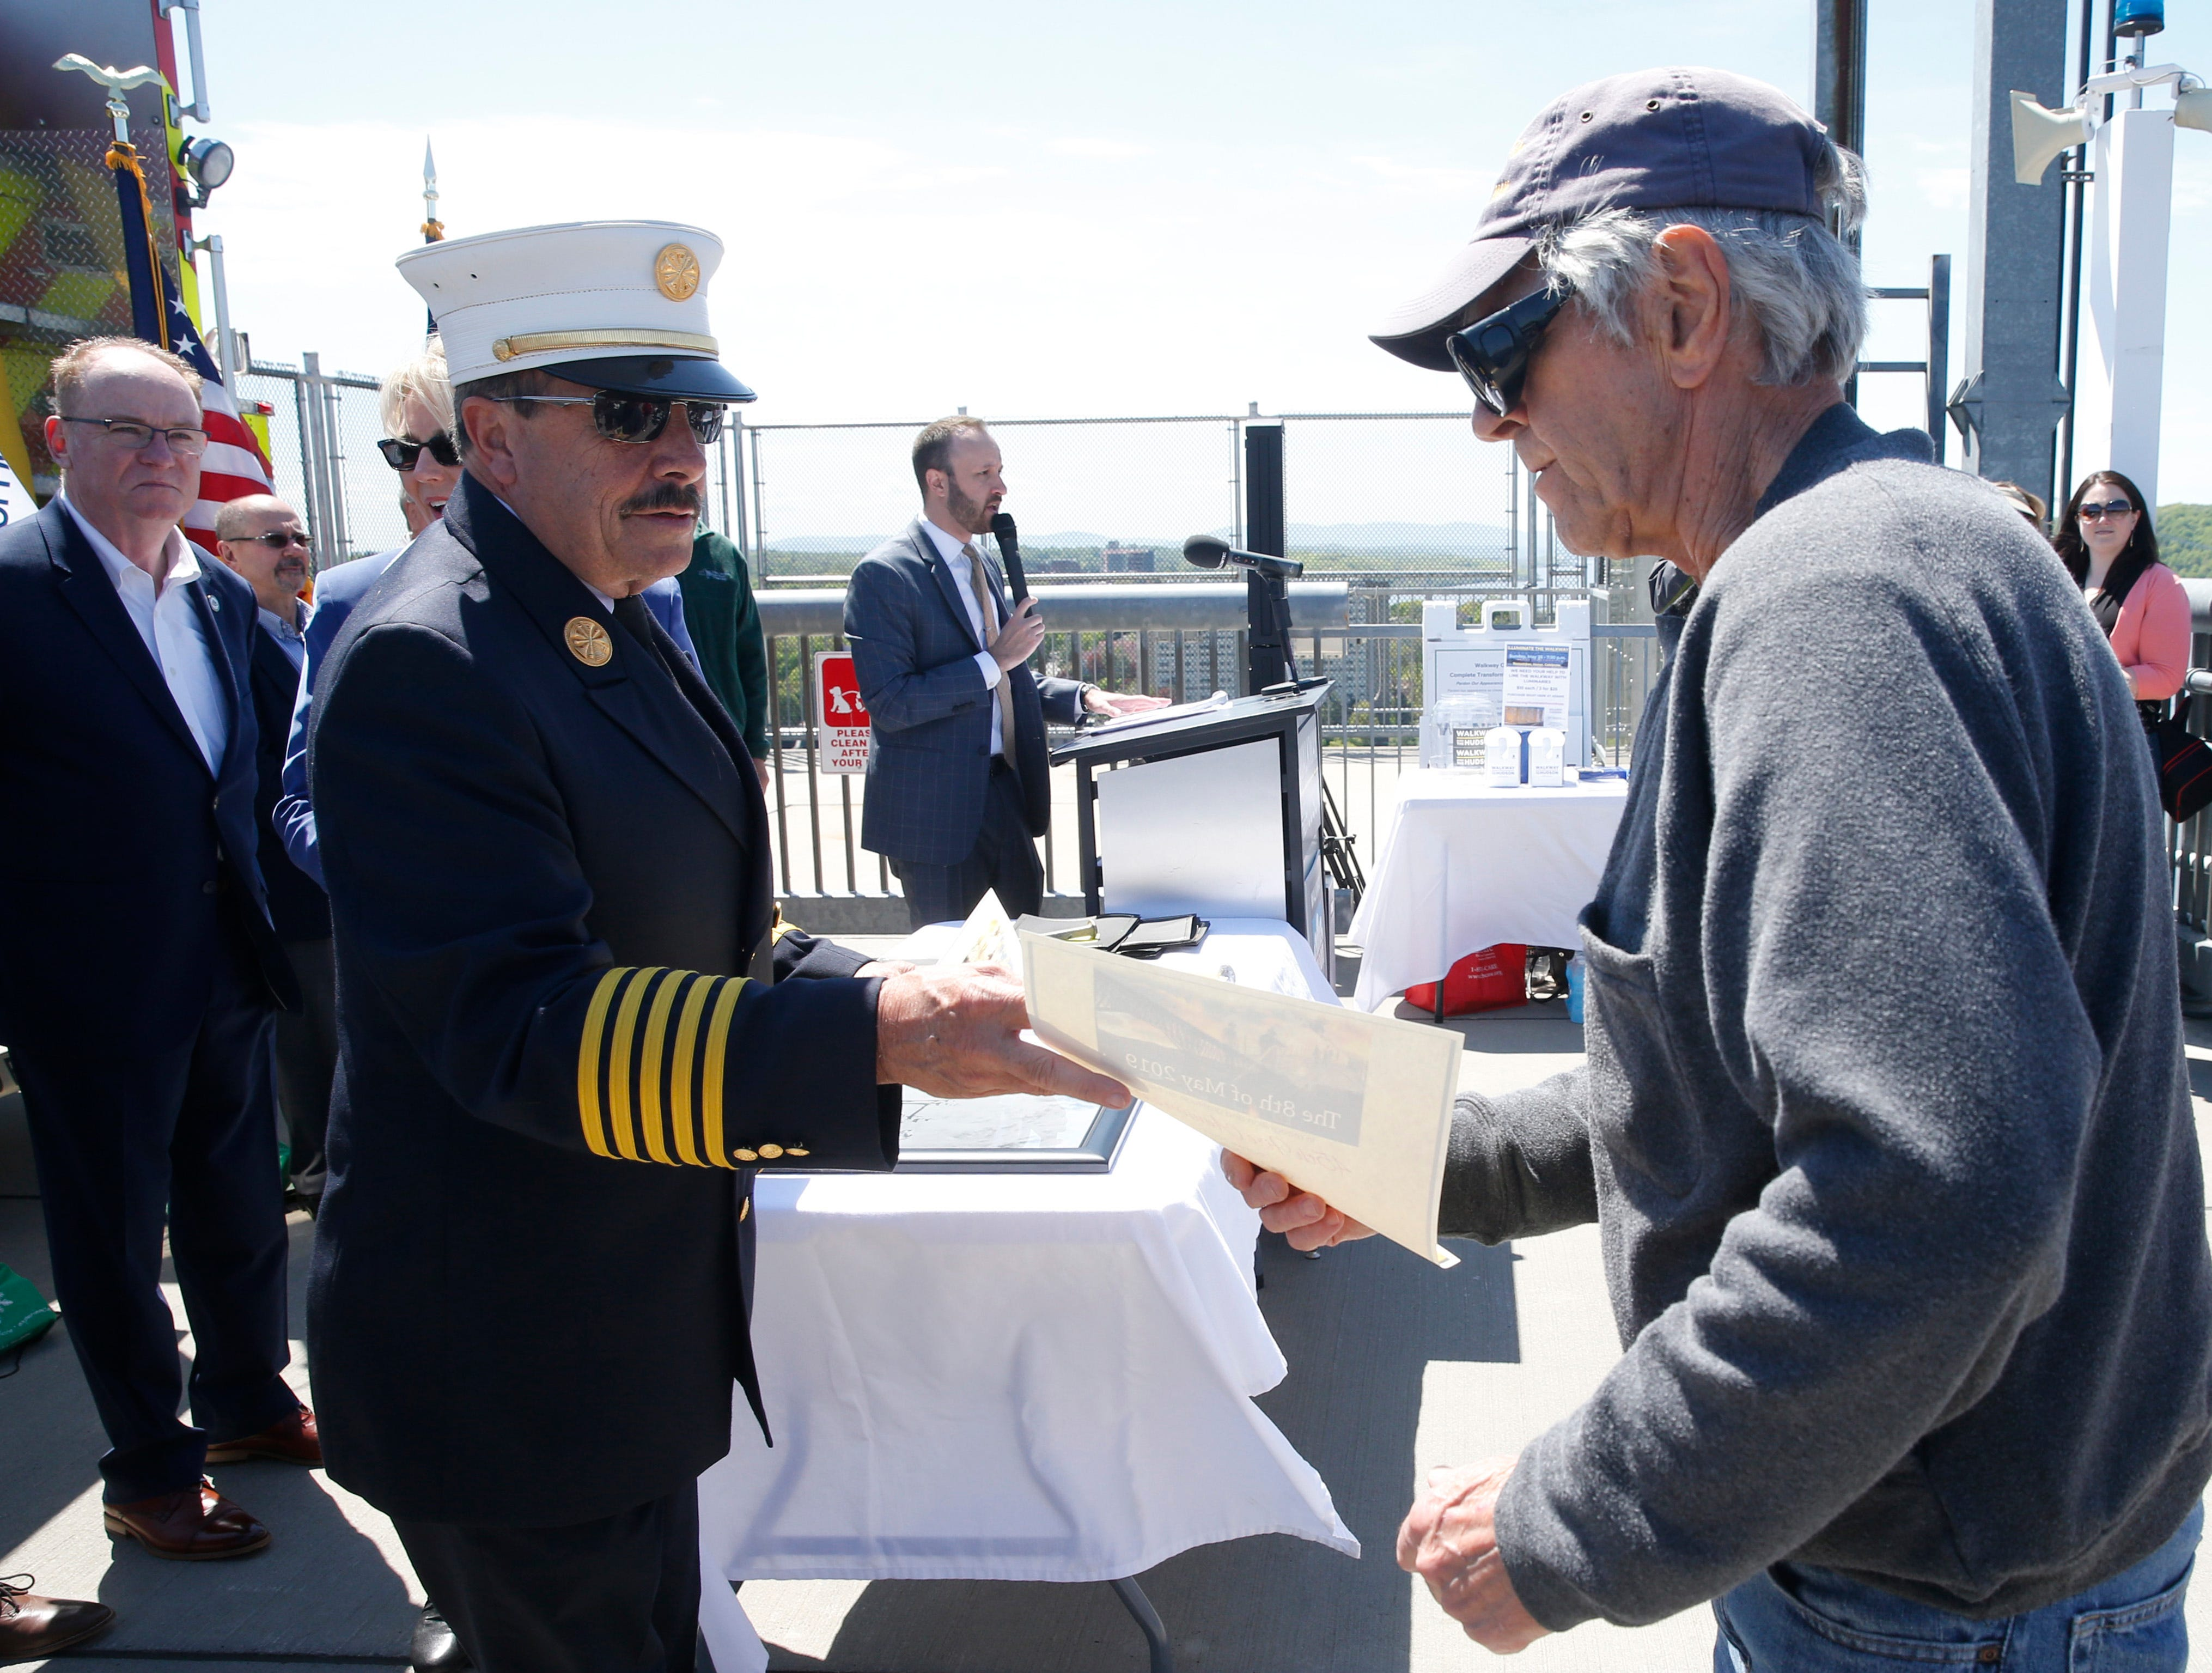 City of Poughkeepsie fire chief Mark Johnson gives a certificate to retired Poughkeepsie firefighter Roger Whitman during Wednesday's commemoration of 45th anniversary of the fire that engulfed the railroad bridge on May 8, 2019. Whitman was one of the city firemen who responded to the fire in 1974.